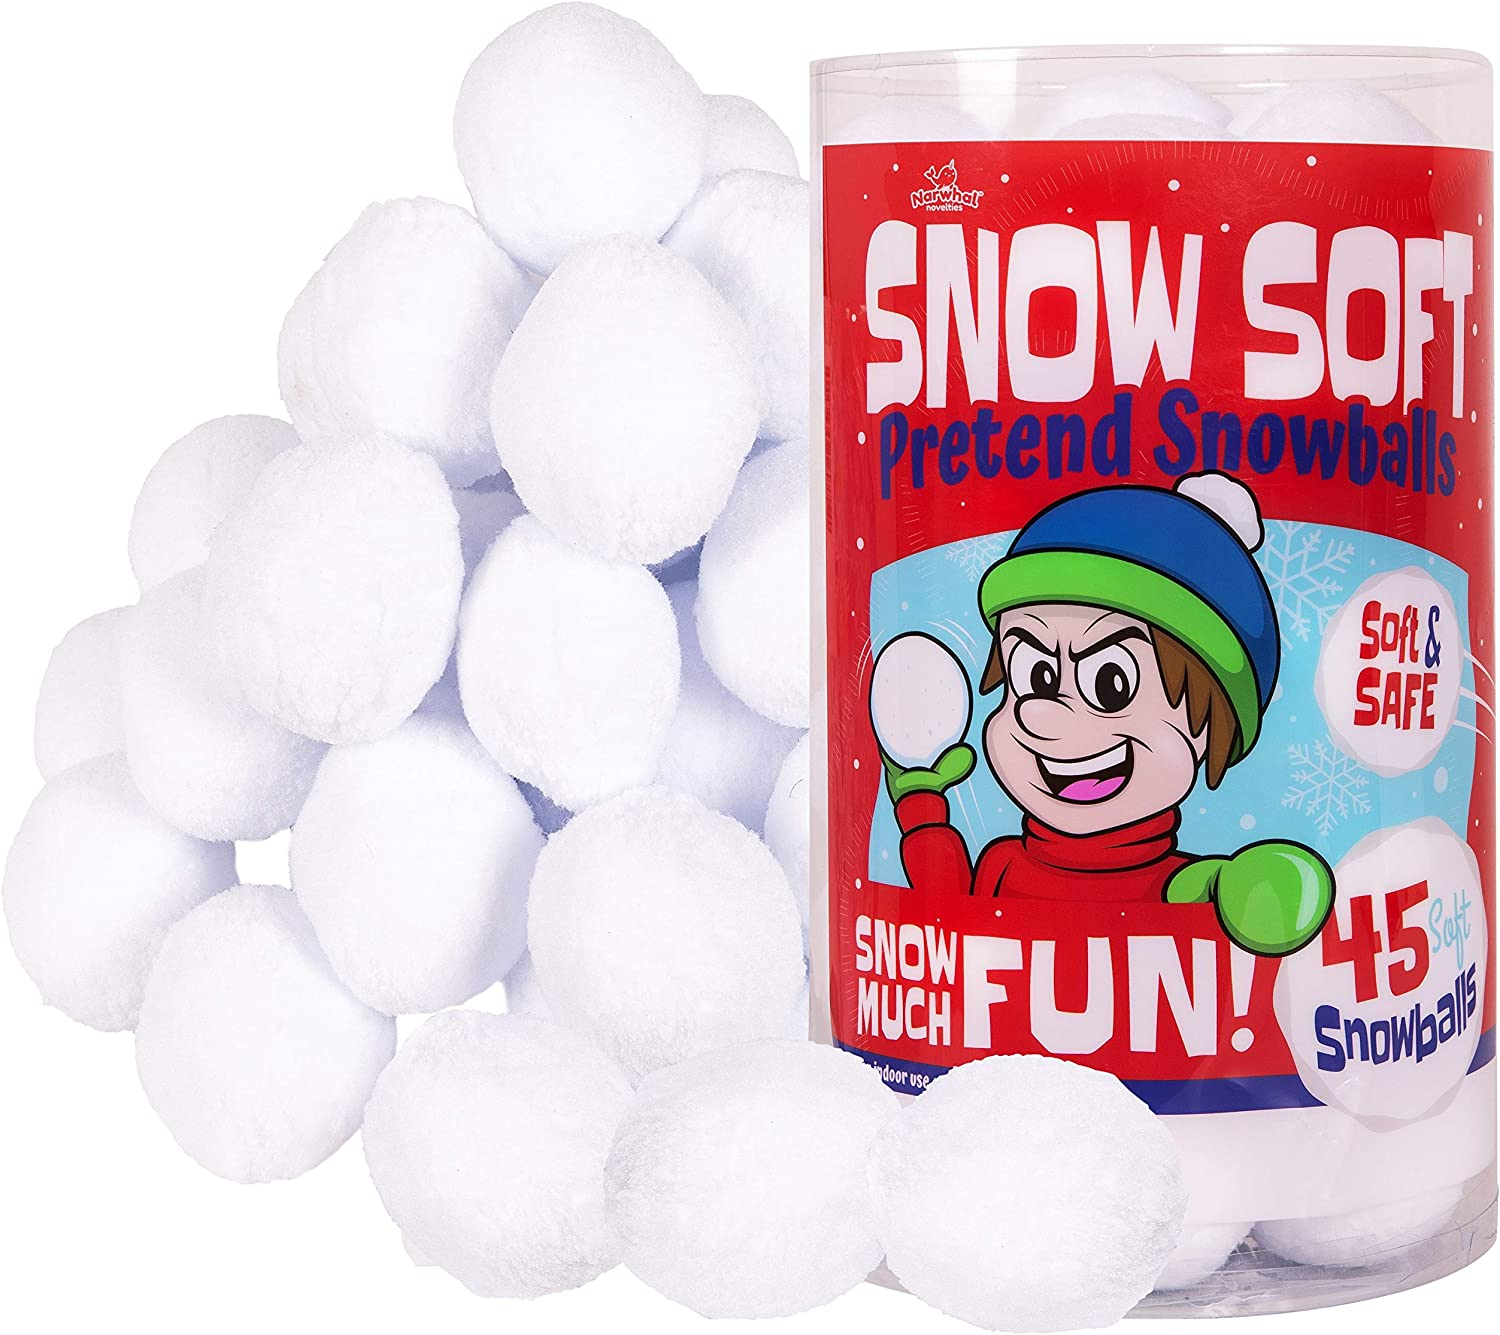 Details about  /FOOTBALL SHAPED SNOWBALL ARSENALS  Assorted Colors  Makes 6 Football Snowballs